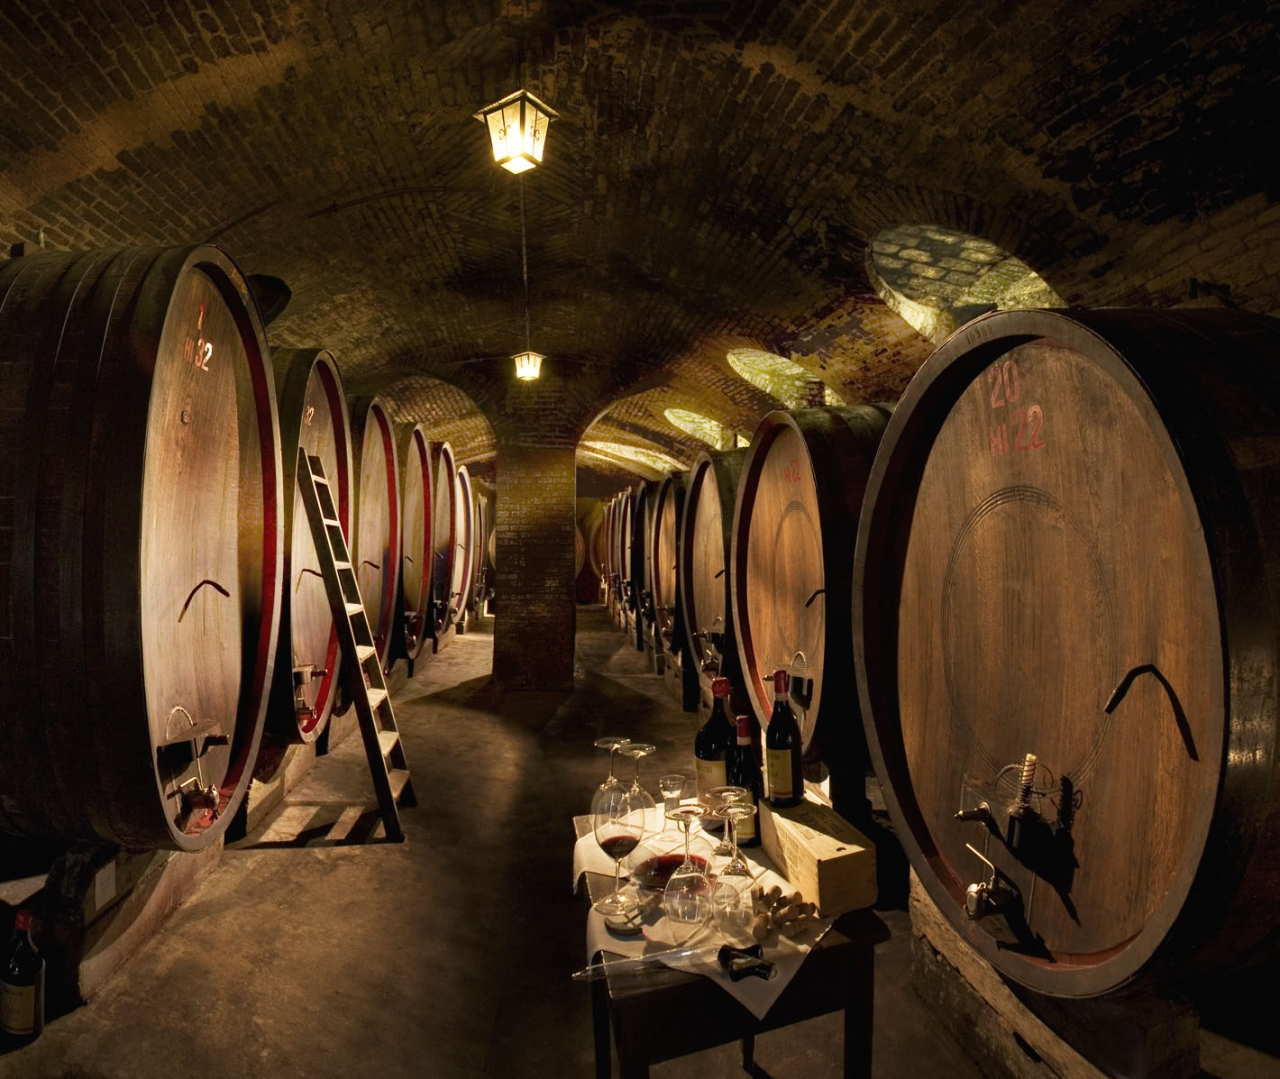 EXCLUSIVE WINE TASTING AT MARCARINI CELLARS, SUNDAY 27 AUGUST